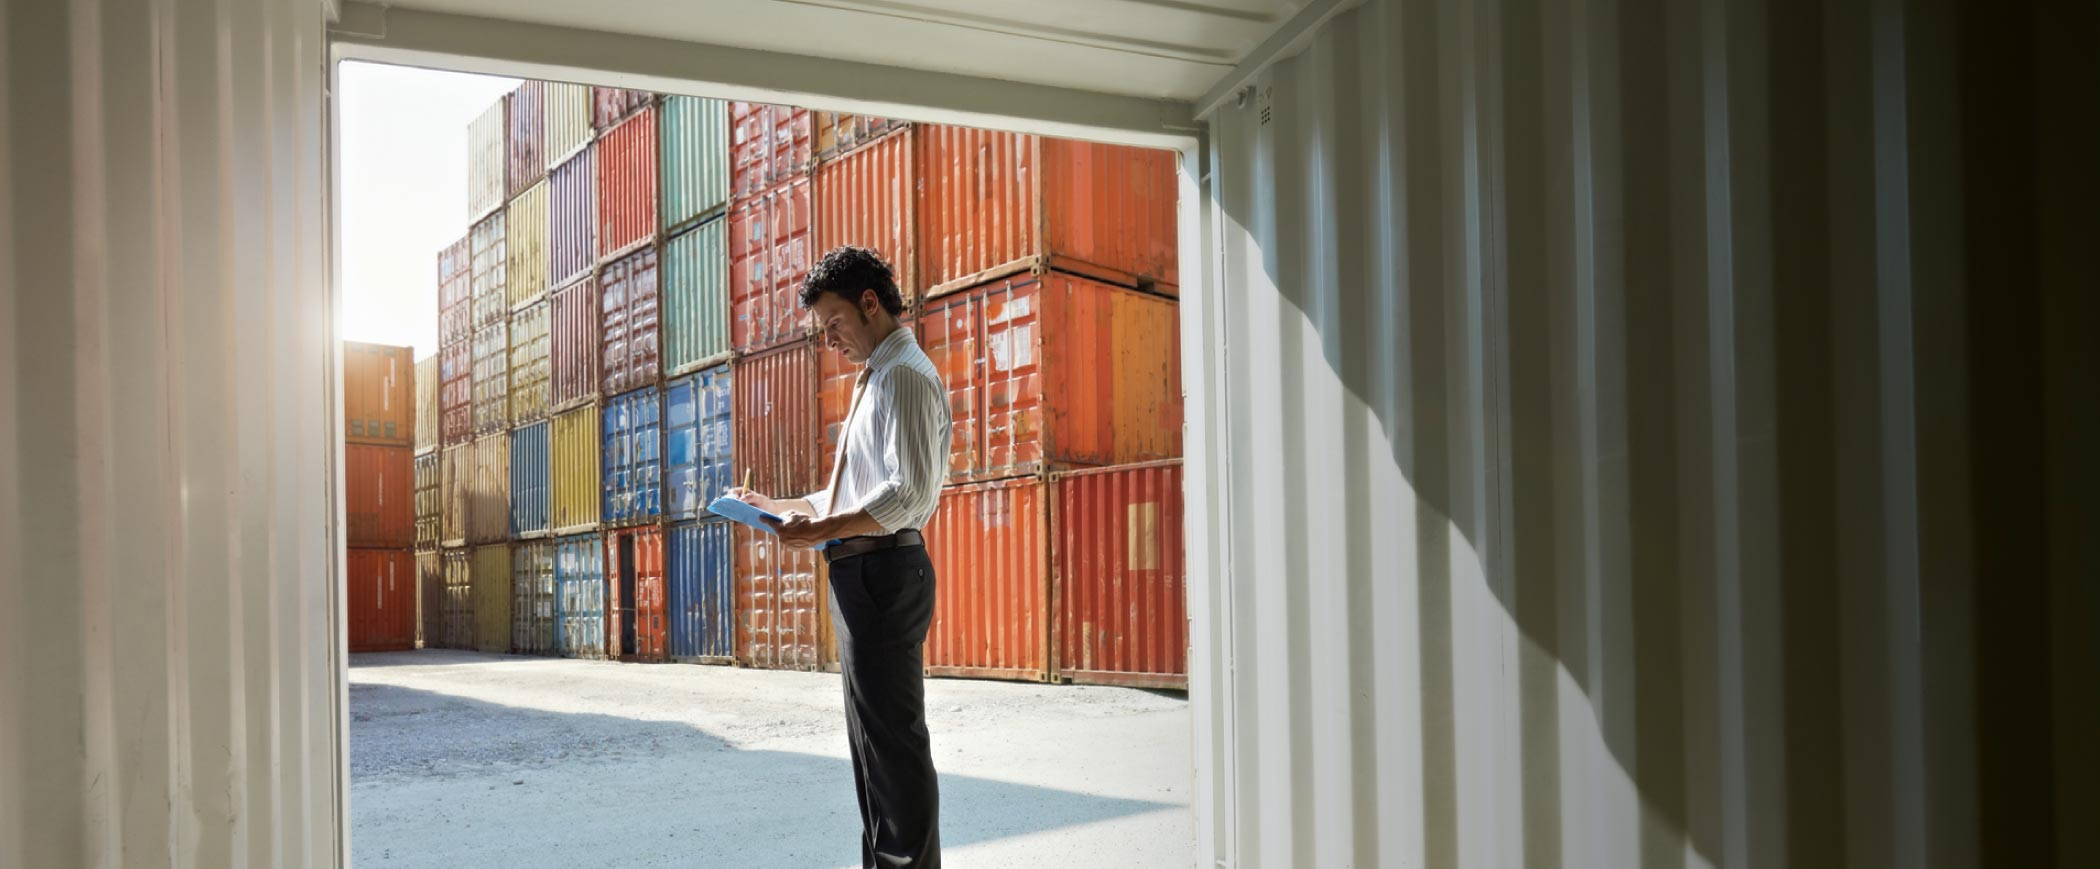 Air&Sea import and<br/>export activities all over the world.<br/>Discover our exclusive services.